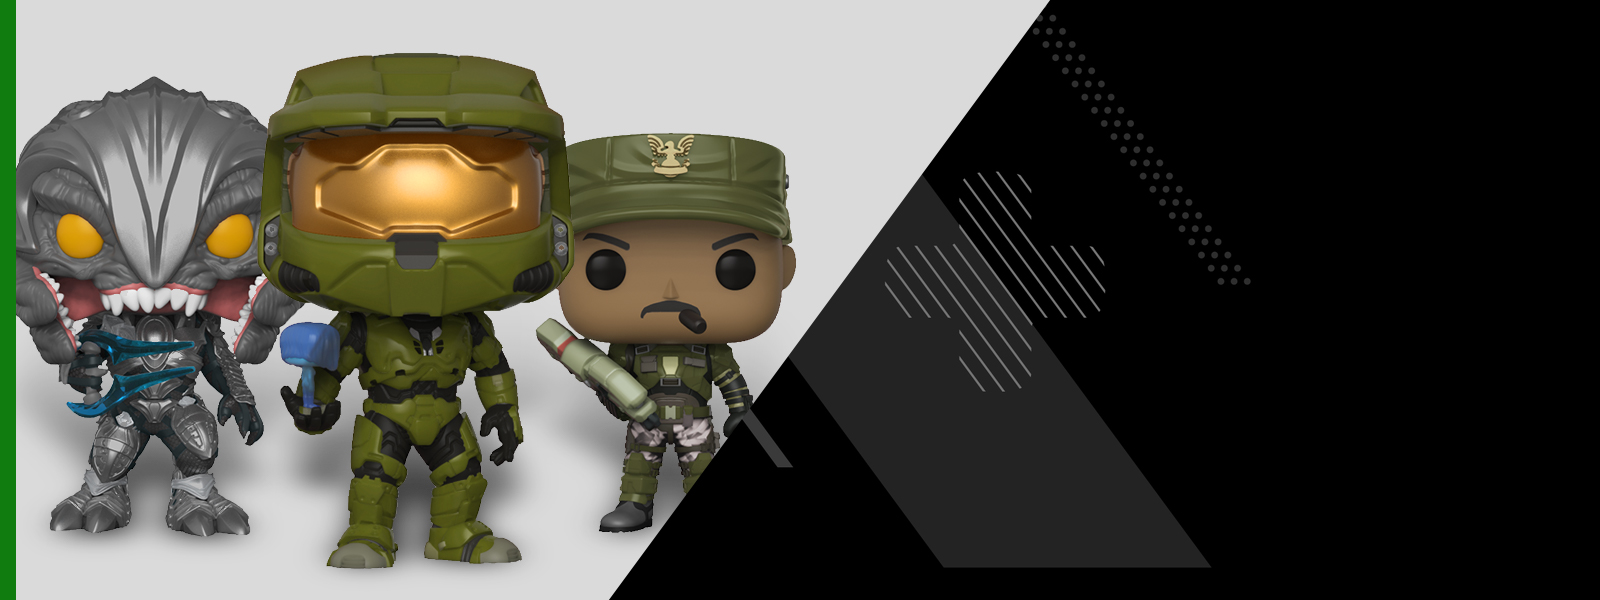 Marchandise Xbox - Avatars Halo - Master Chief